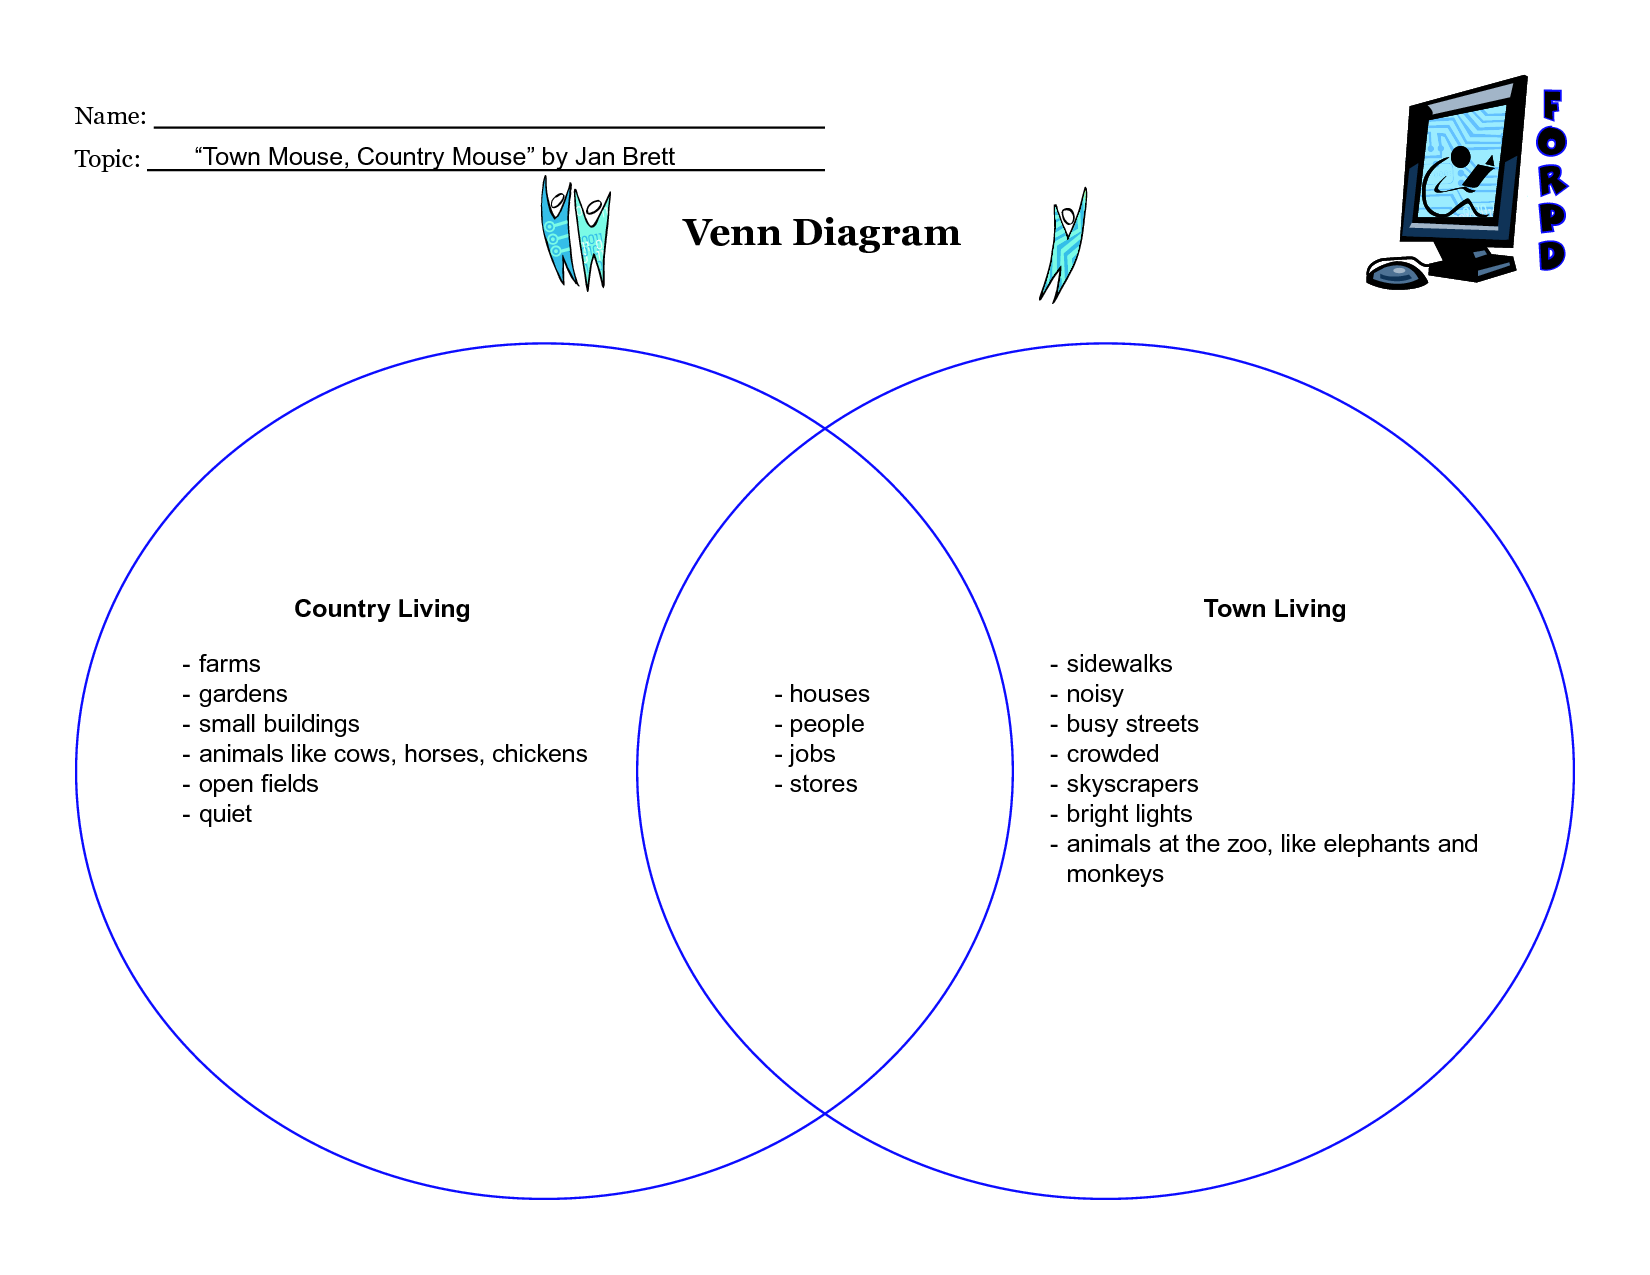 Venn Diagram Worksheet Country Life City Name Topic Town Mouse By Jan Brett